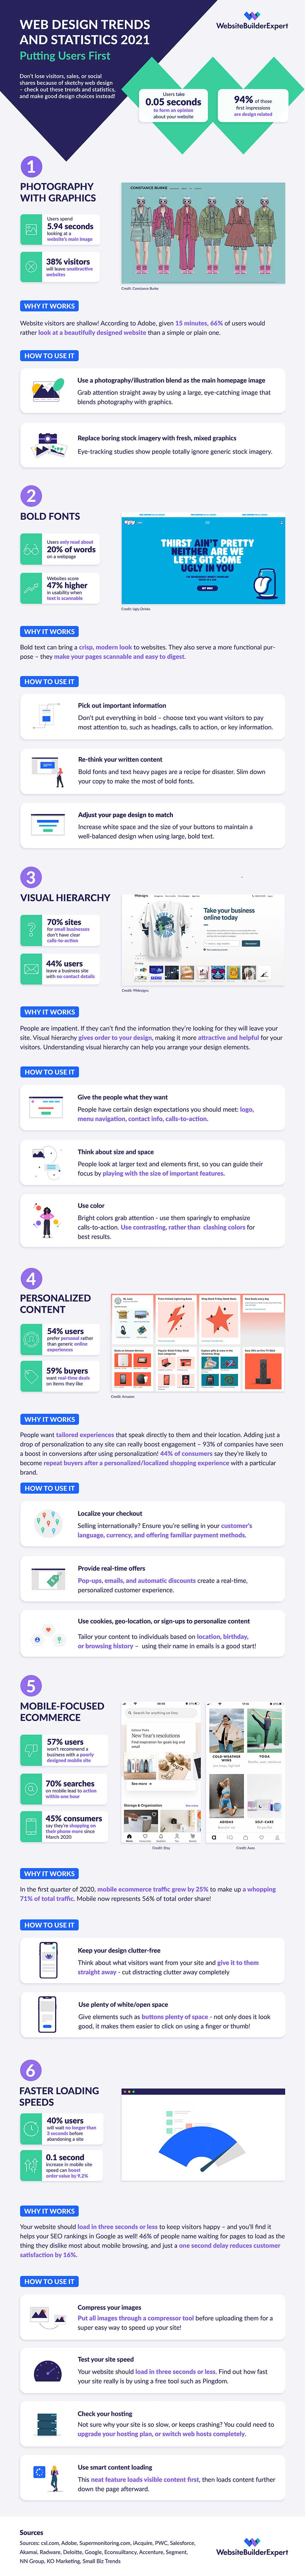 2021 Web Design Trends and Data